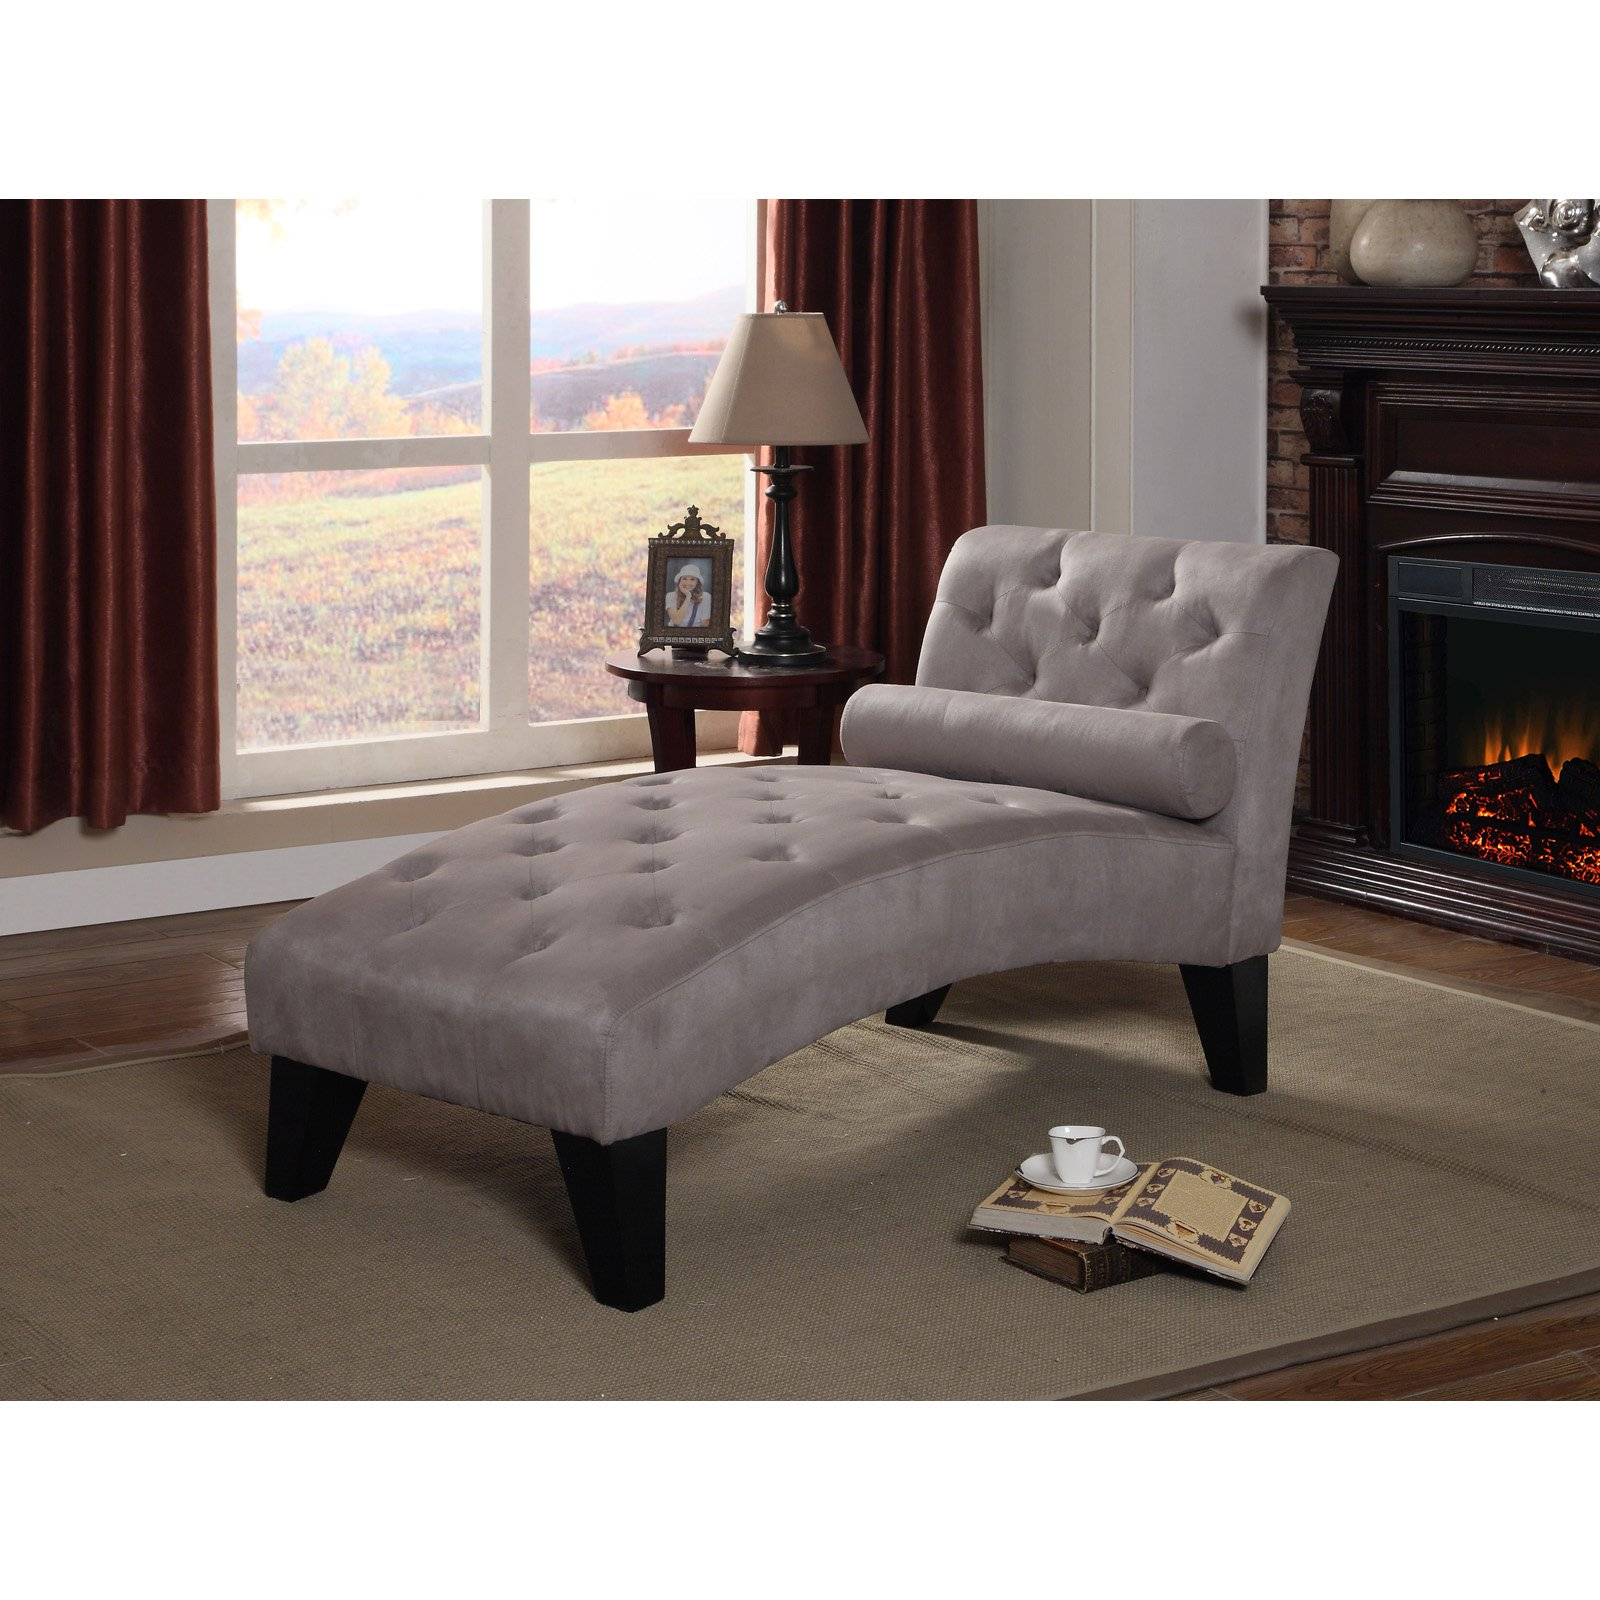 NH Designs Microfiber Chaise Lounge